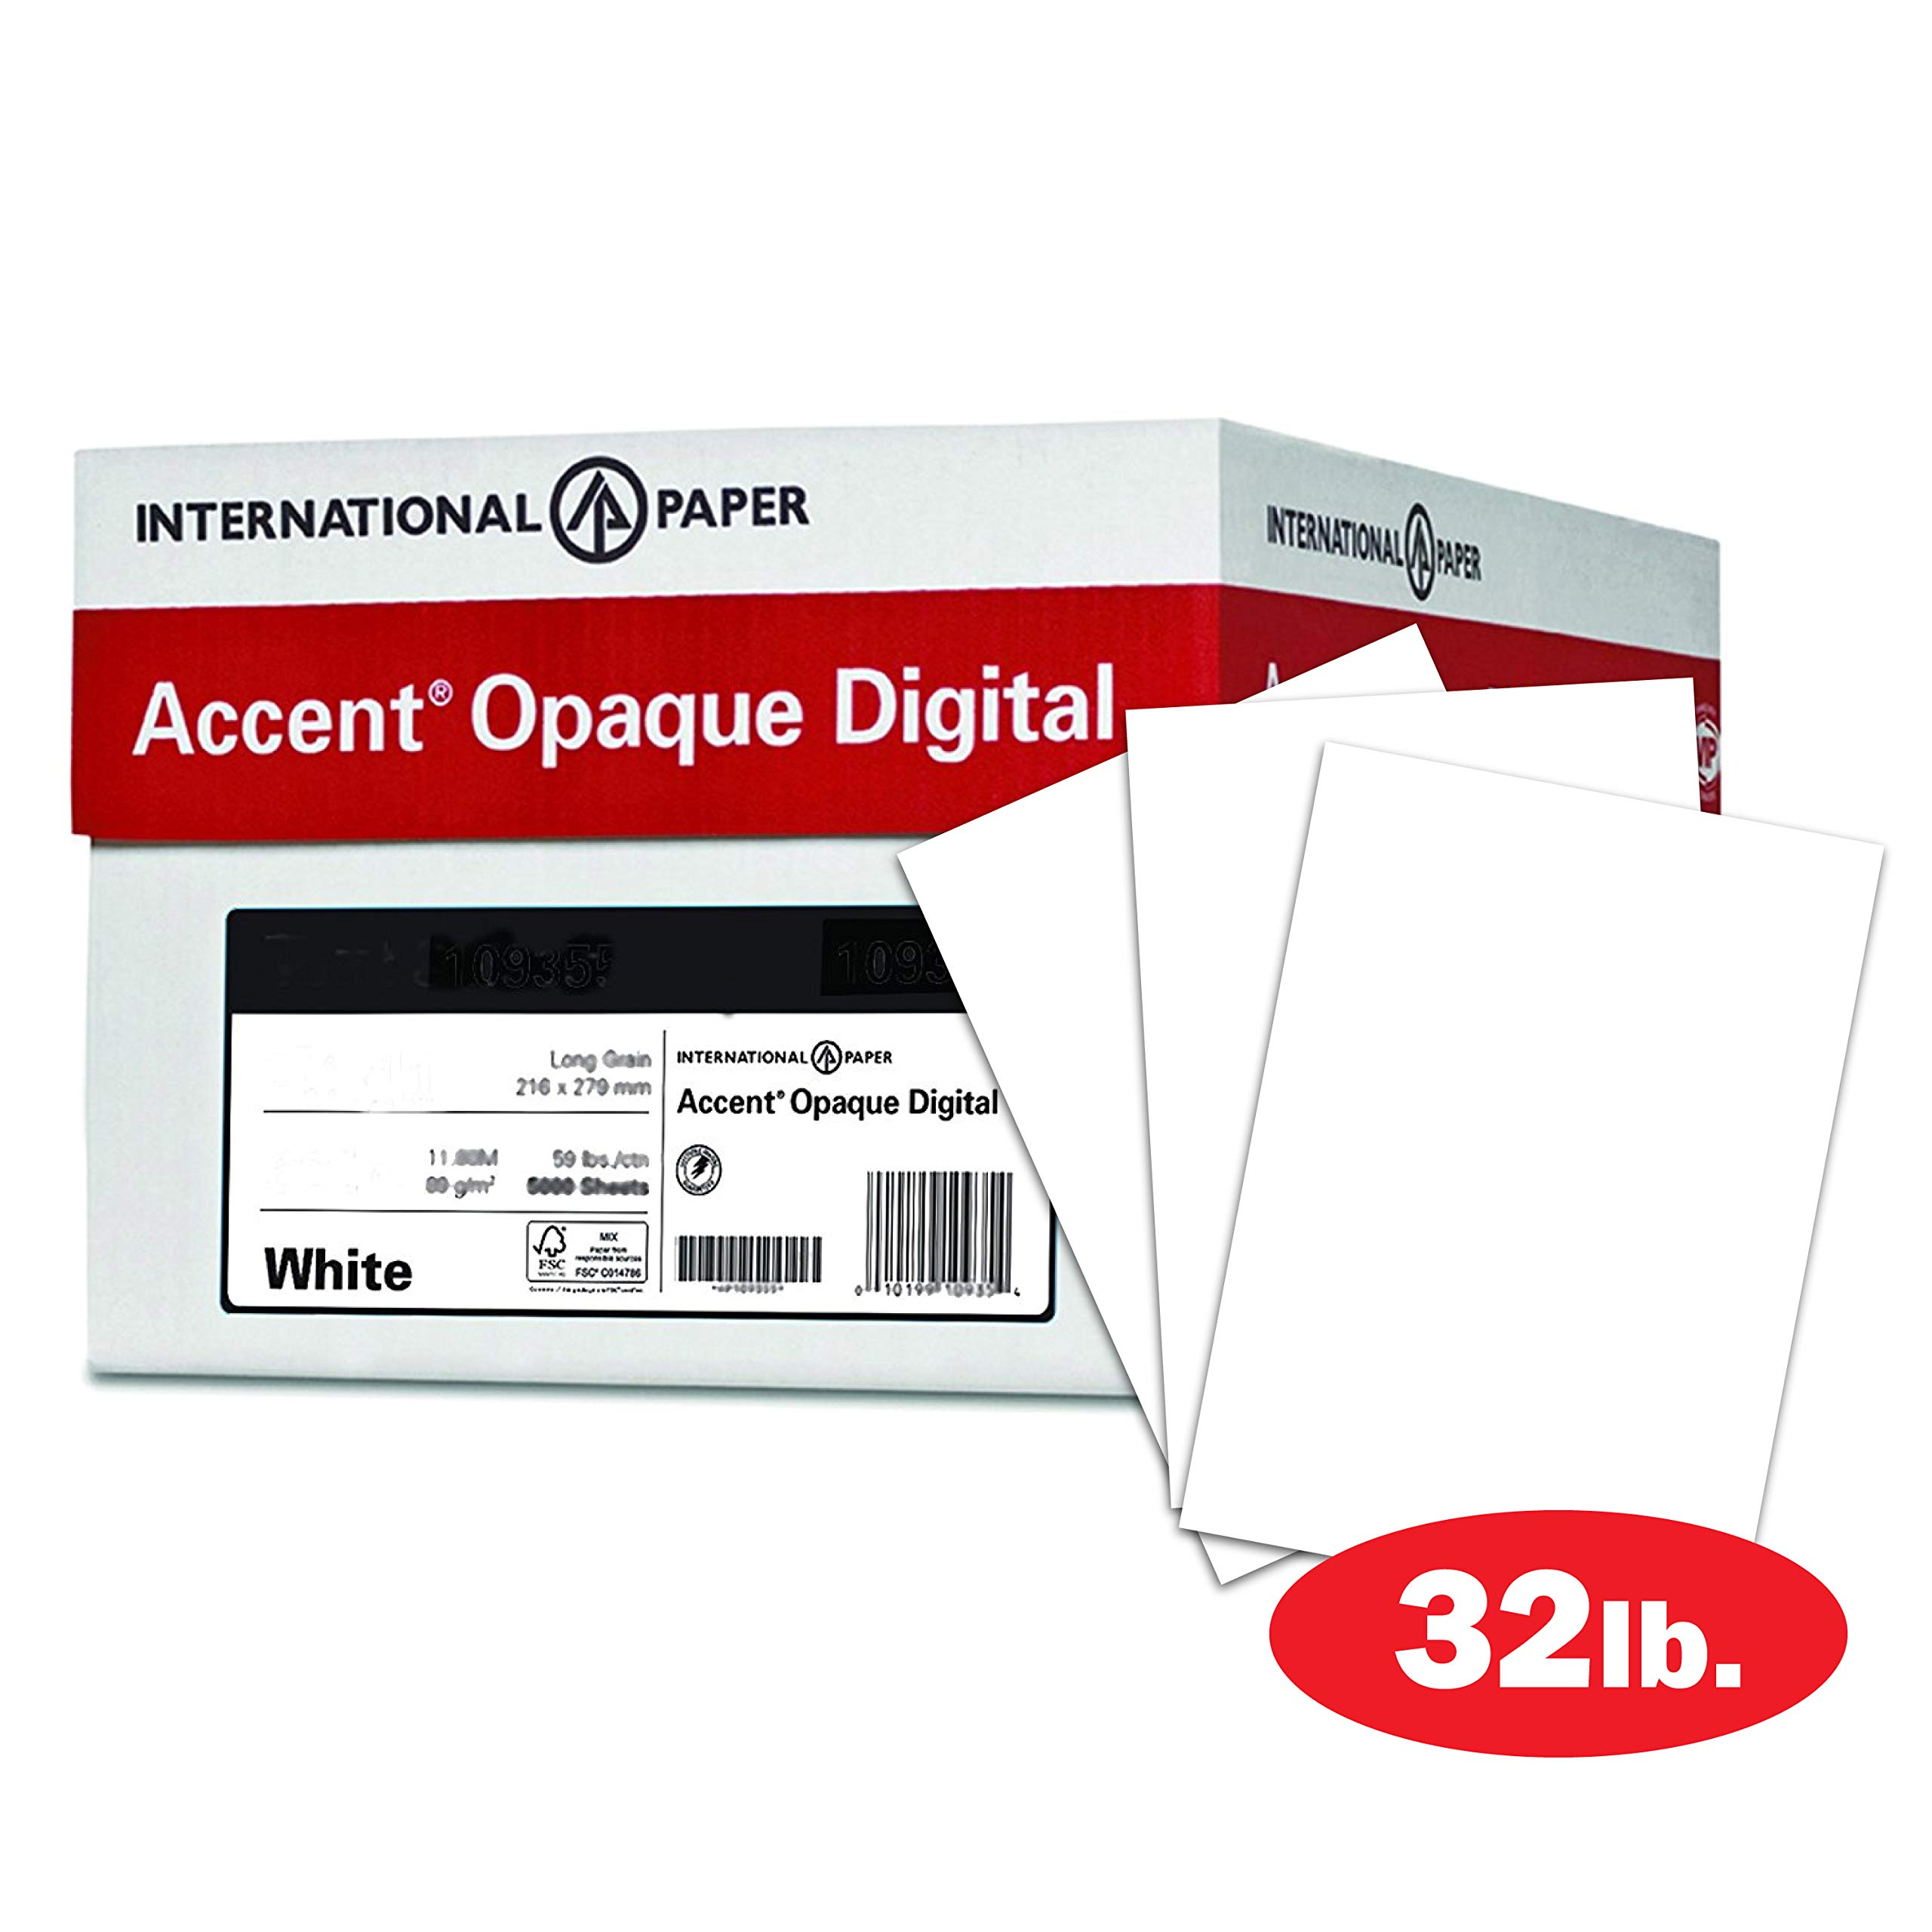 Accent Opaque 32lb Warm White Paper, 80lb Text, 118 gsm, 12x18 Paper, 97 Bright, 4 Ream Case / 1,600 Sheets, Smooth, Text Heavy Paper (188178C)